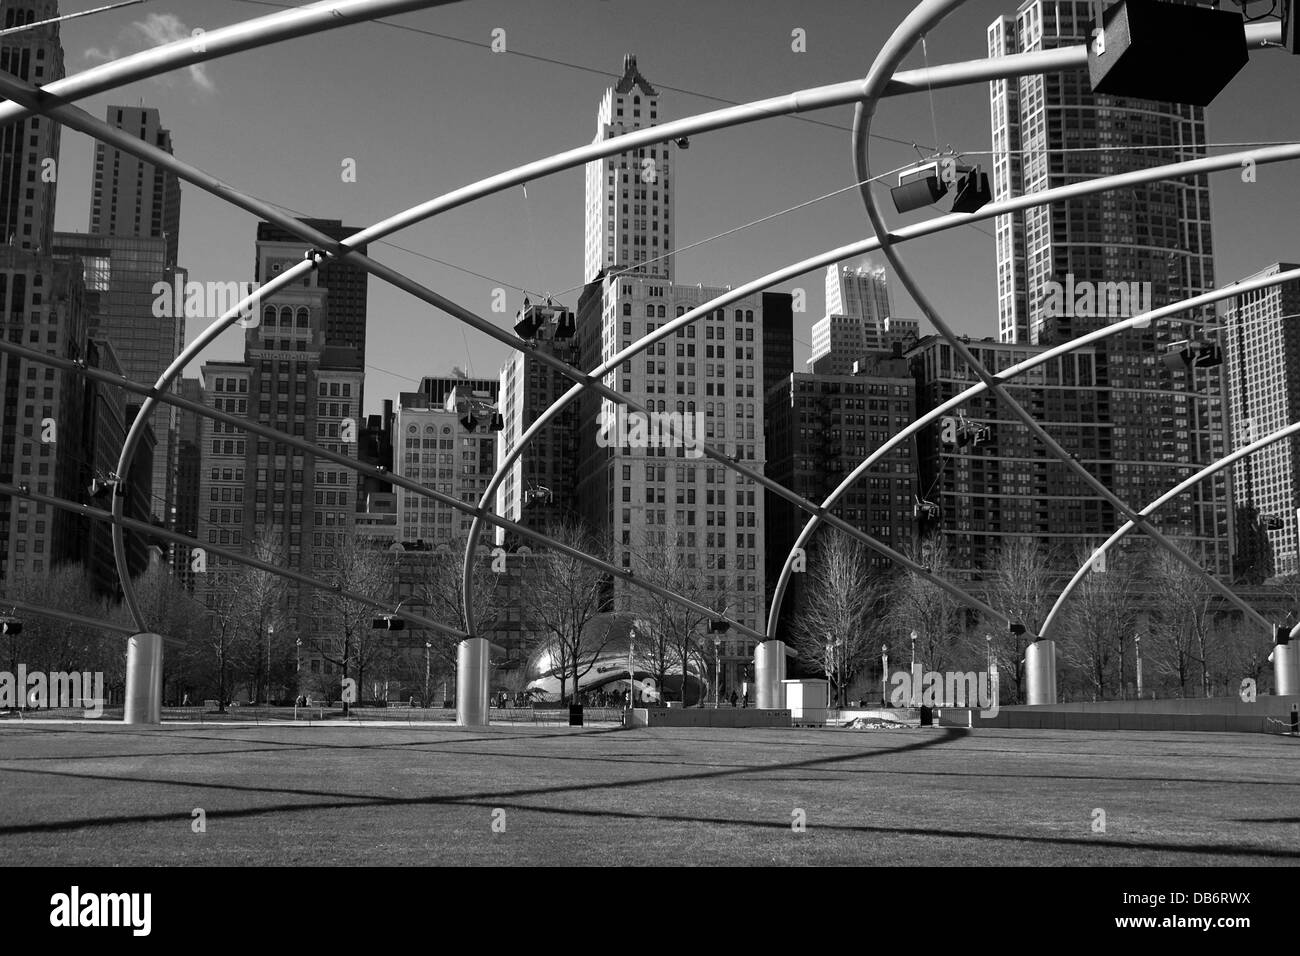 Black and white photograph of Michigan Avenue seen through the grid of the bandstand in Millennium Park, Chicago, - Stock Image